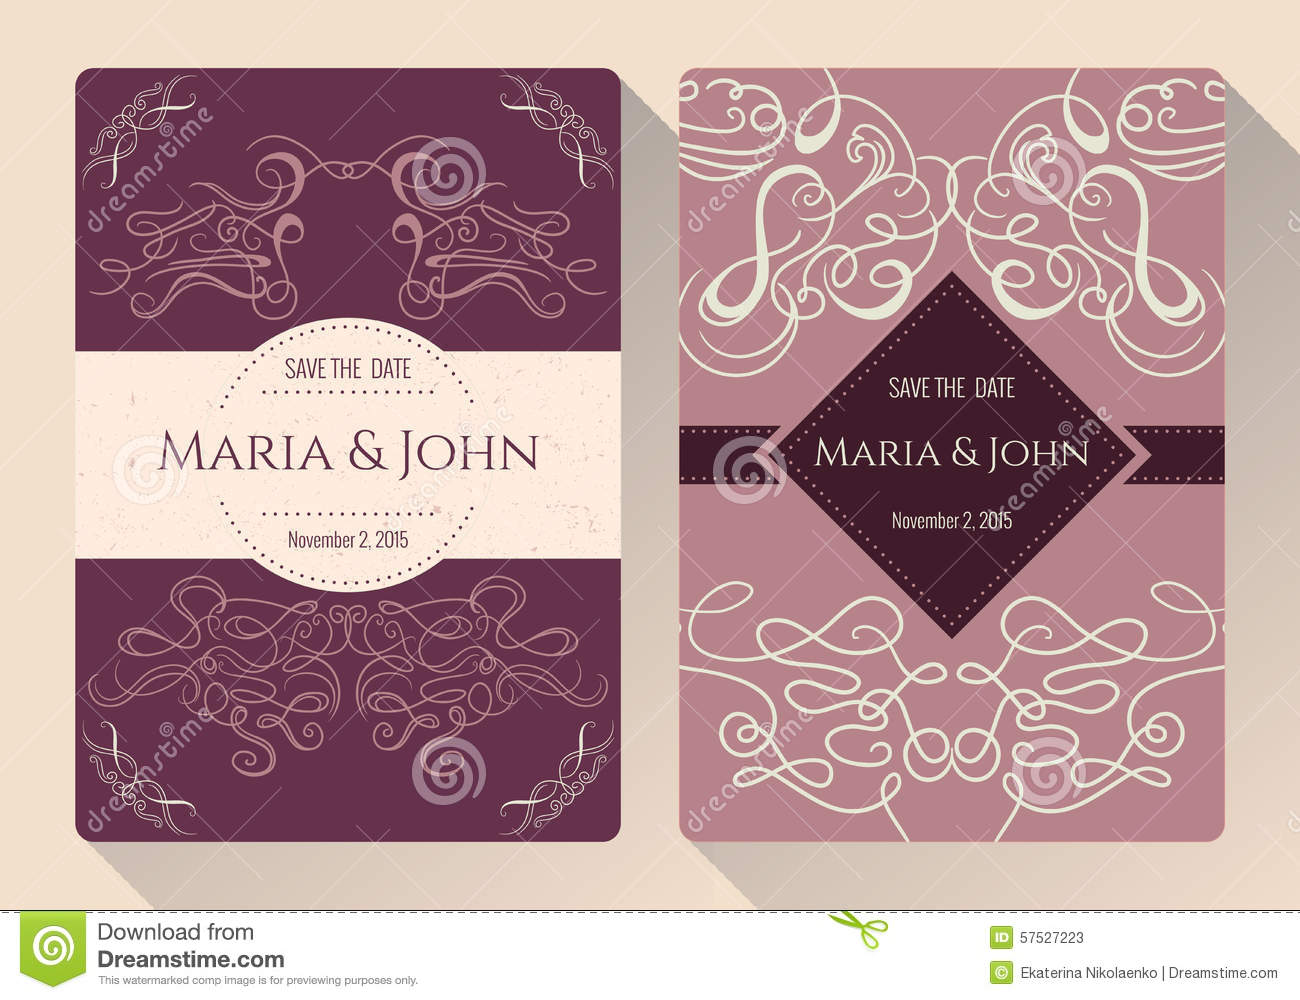 Save the date collection vector illustration Collect and save